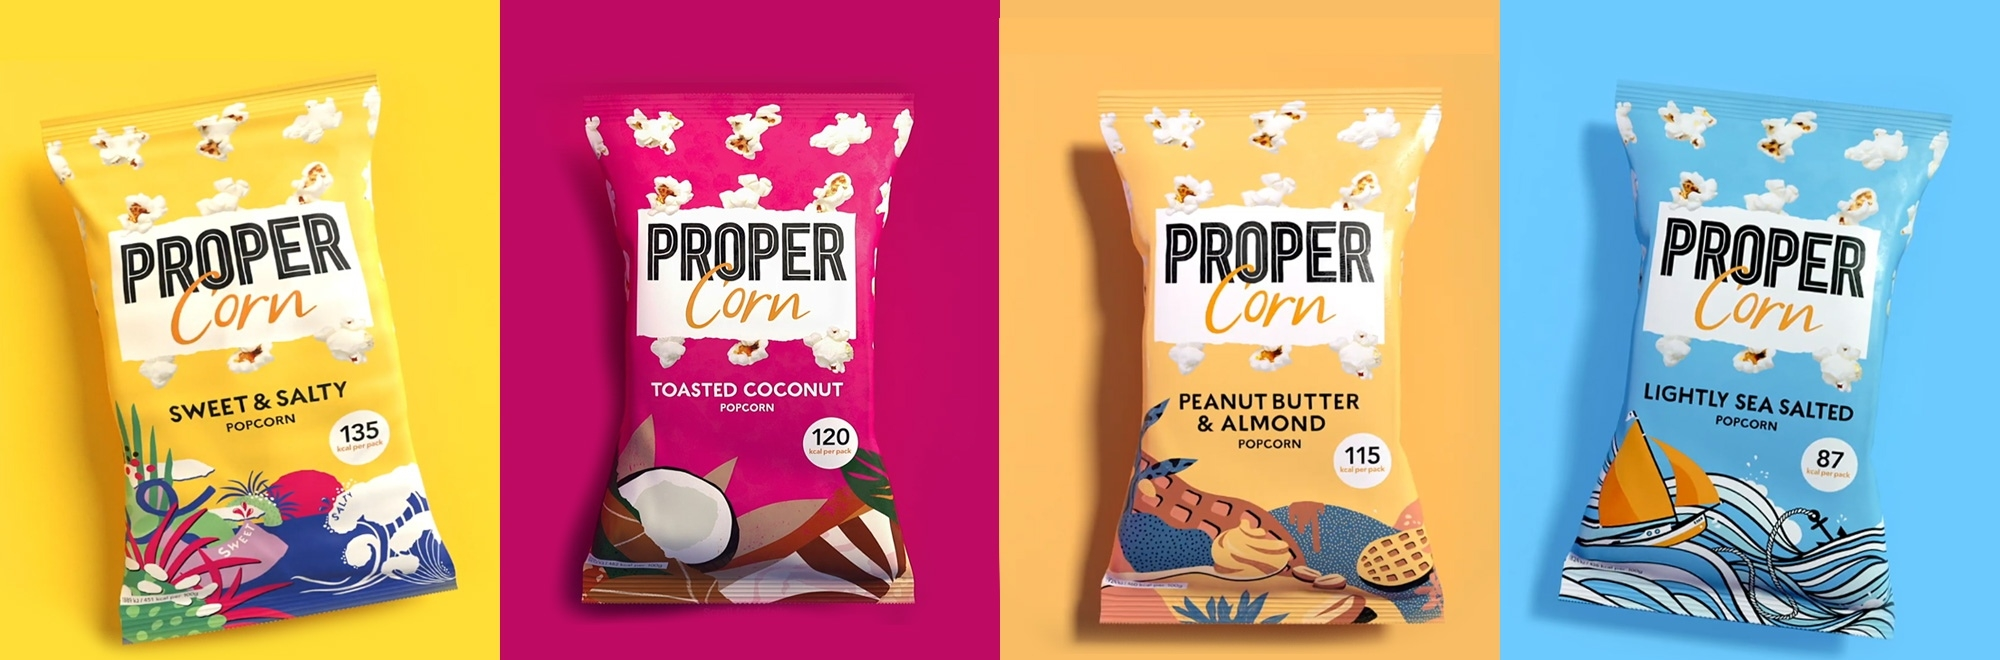 TV debut by Proper with 'Popcorn Done Properly' ad